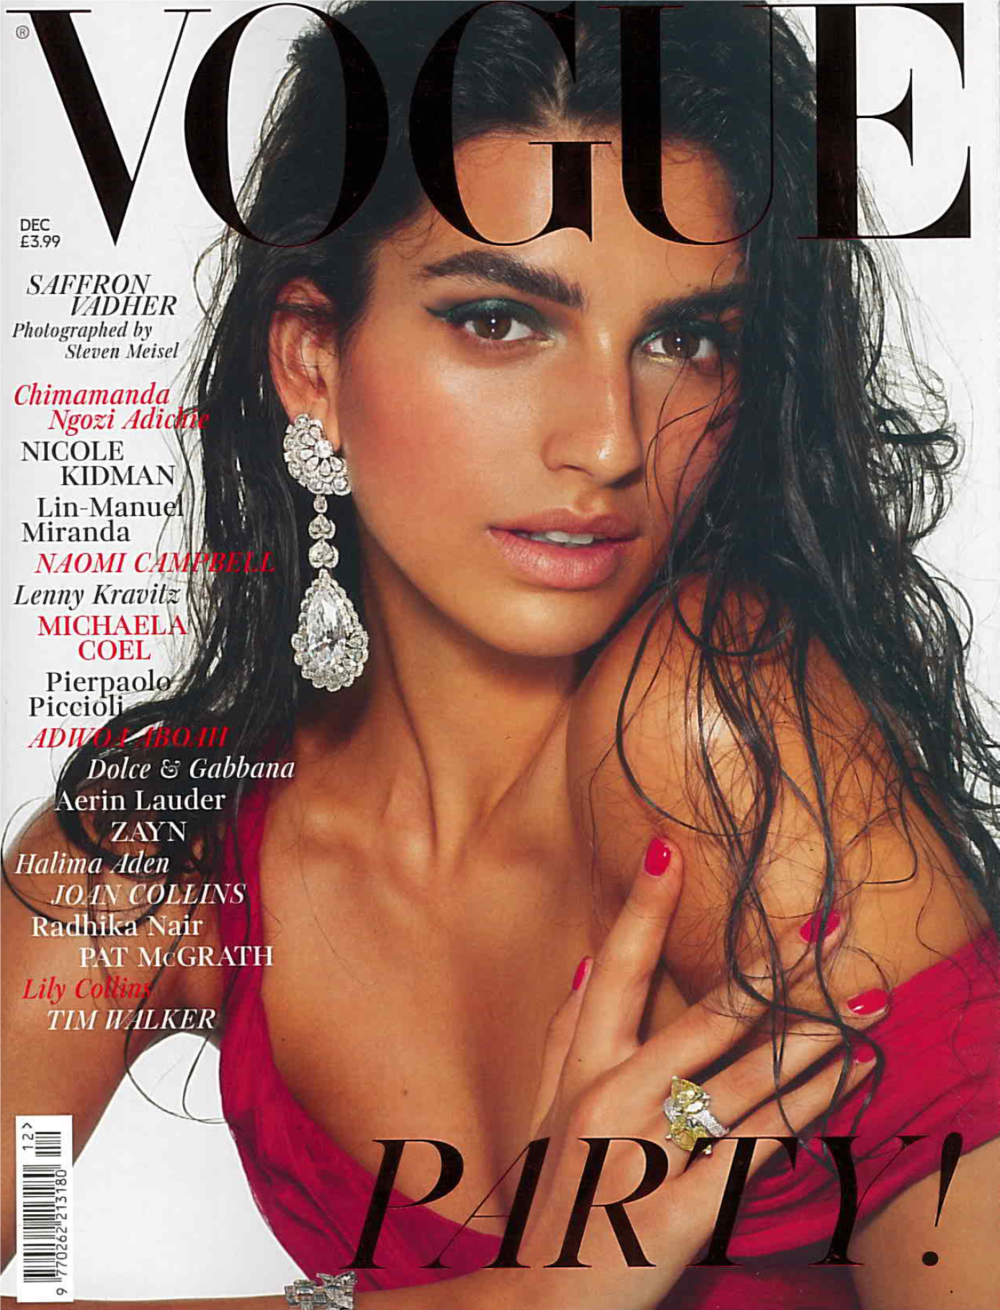 Britist Vogue Dec. 2018 Saffron Vadher Cover